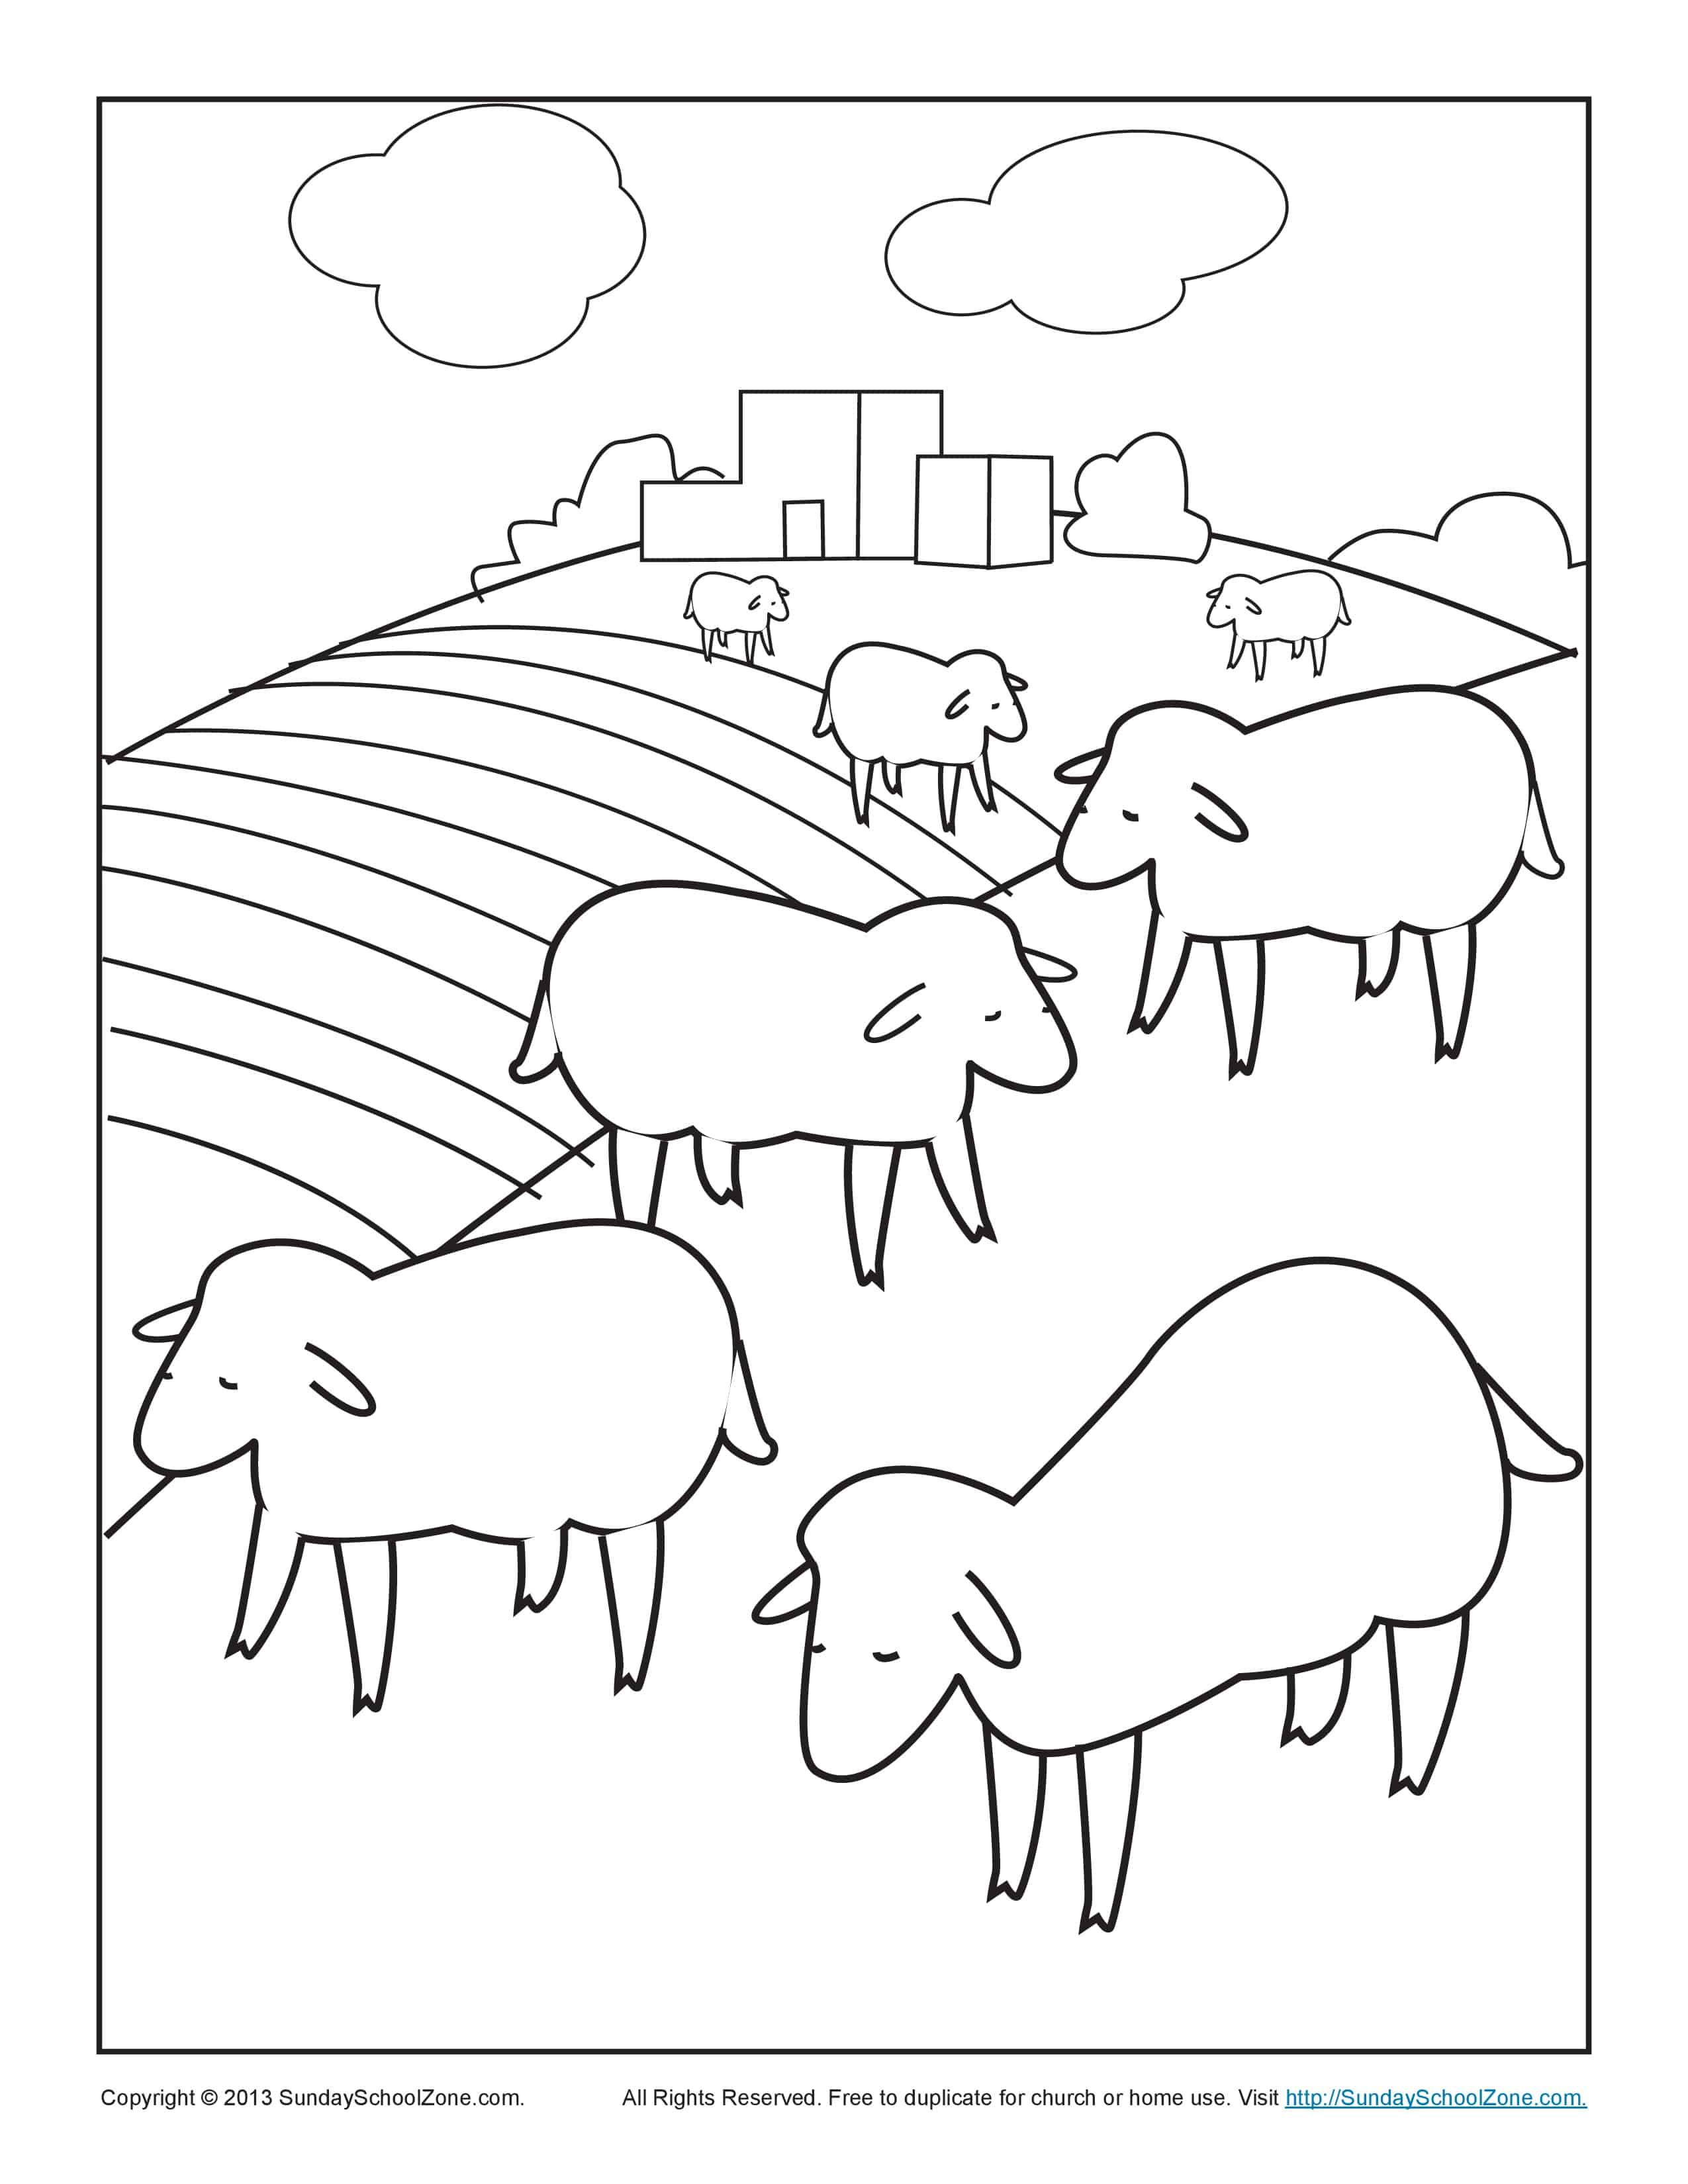 Bible Coloring Pages For Kids The Lost Sheep The Lost Sheep Coloring Pages